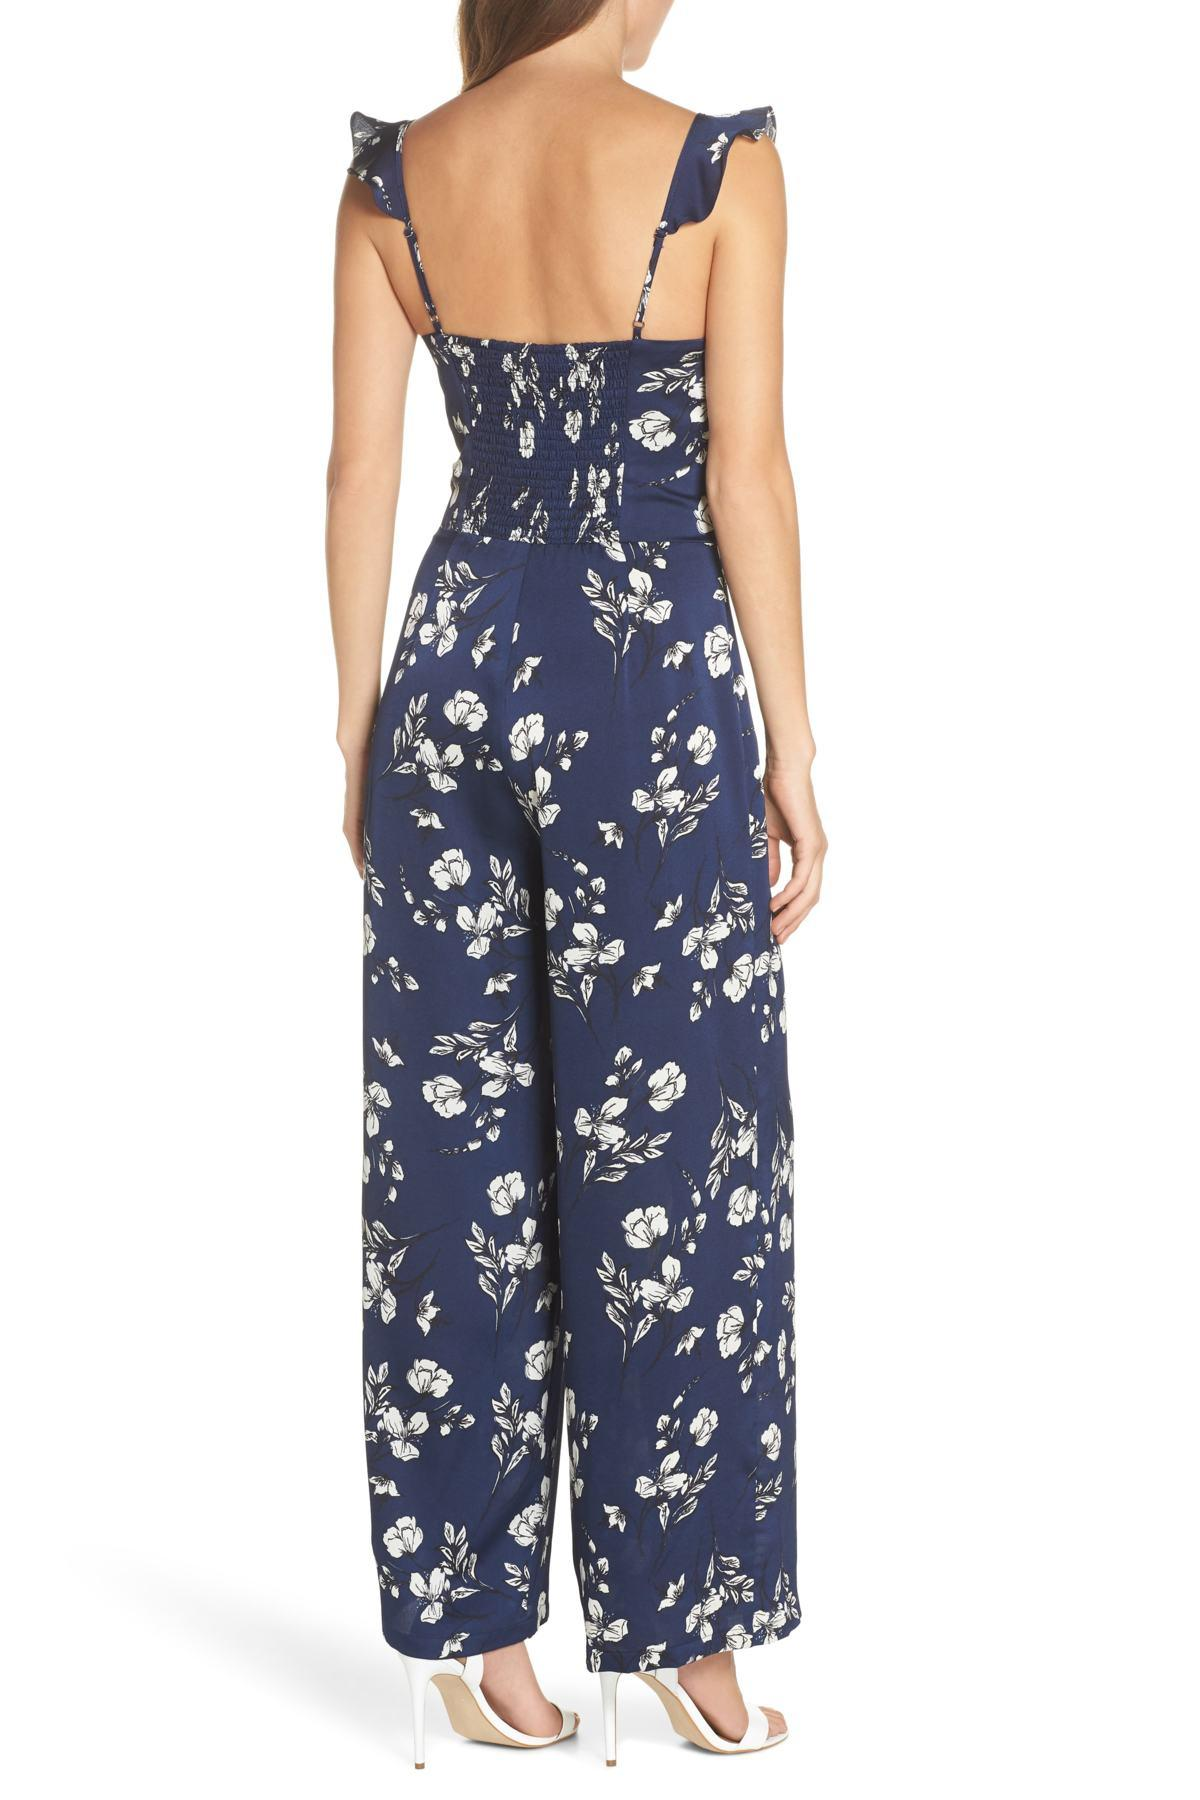 fe16f1022f90 Lyst - Chelsea28 Tie Front Jumpsuit in Blue